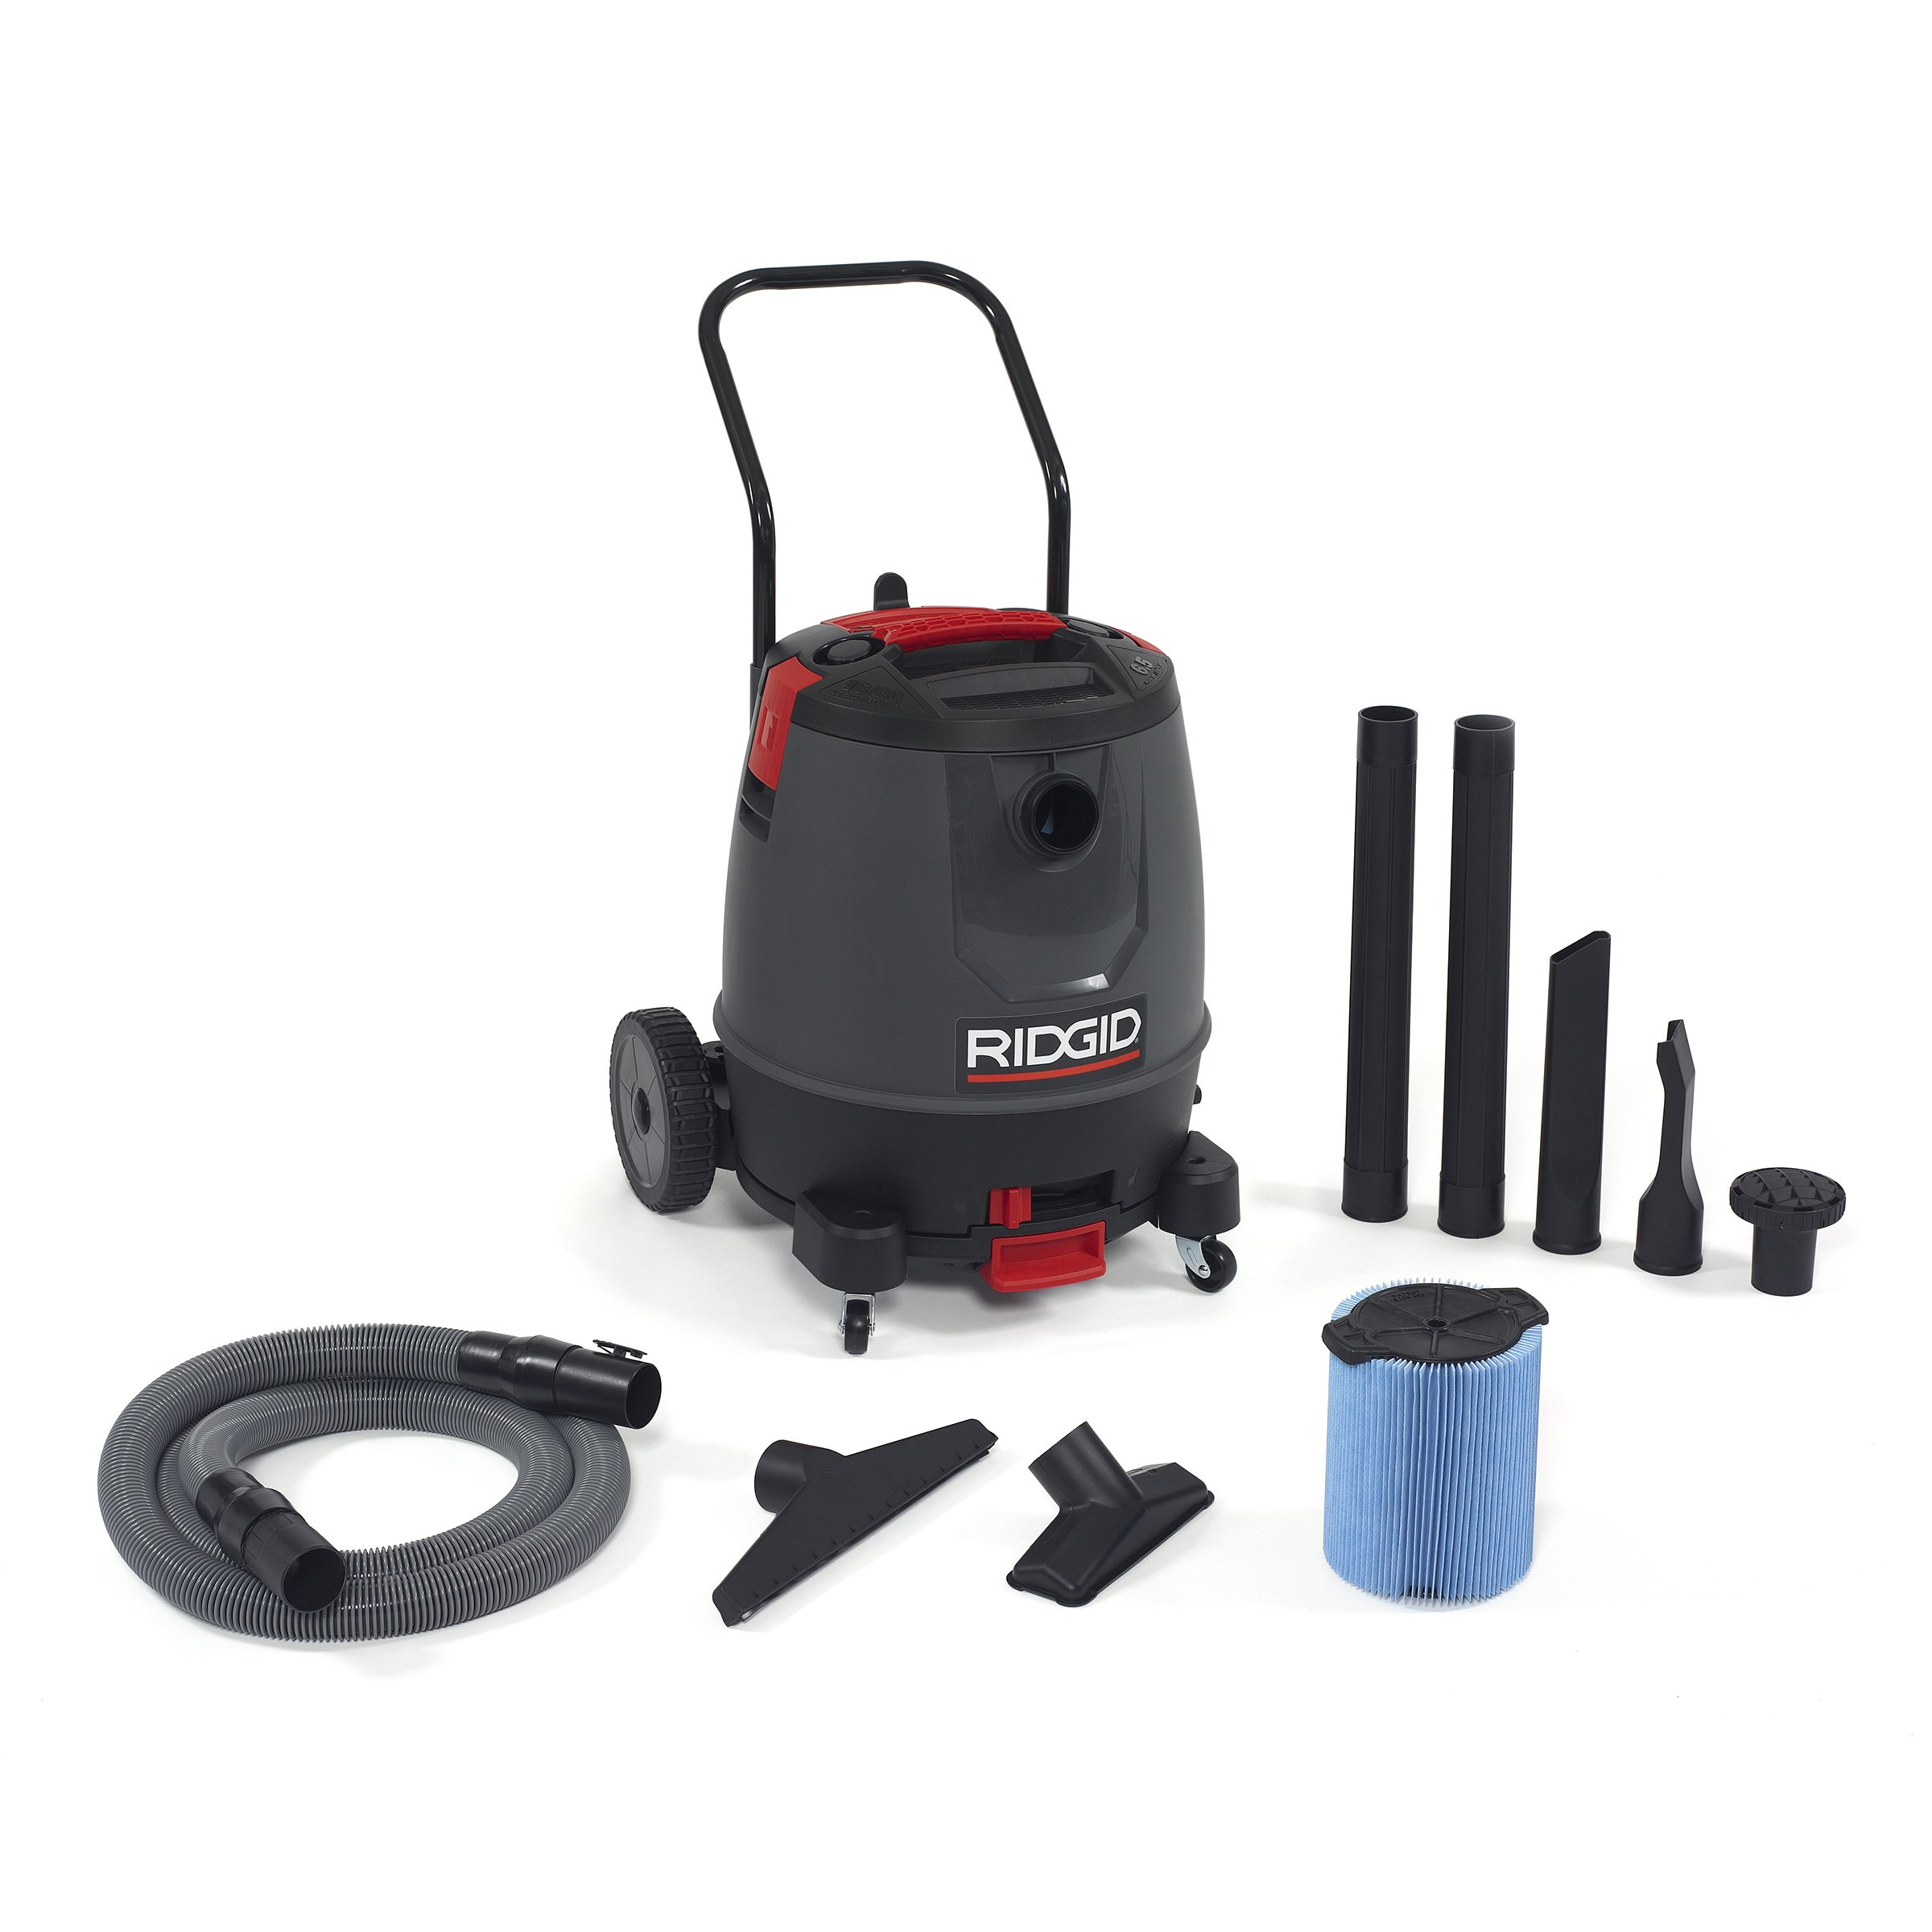 Ridgid 50338 1650RV Motor-On-Bottom Wet/Dry Vacuum, 16 gal, Red